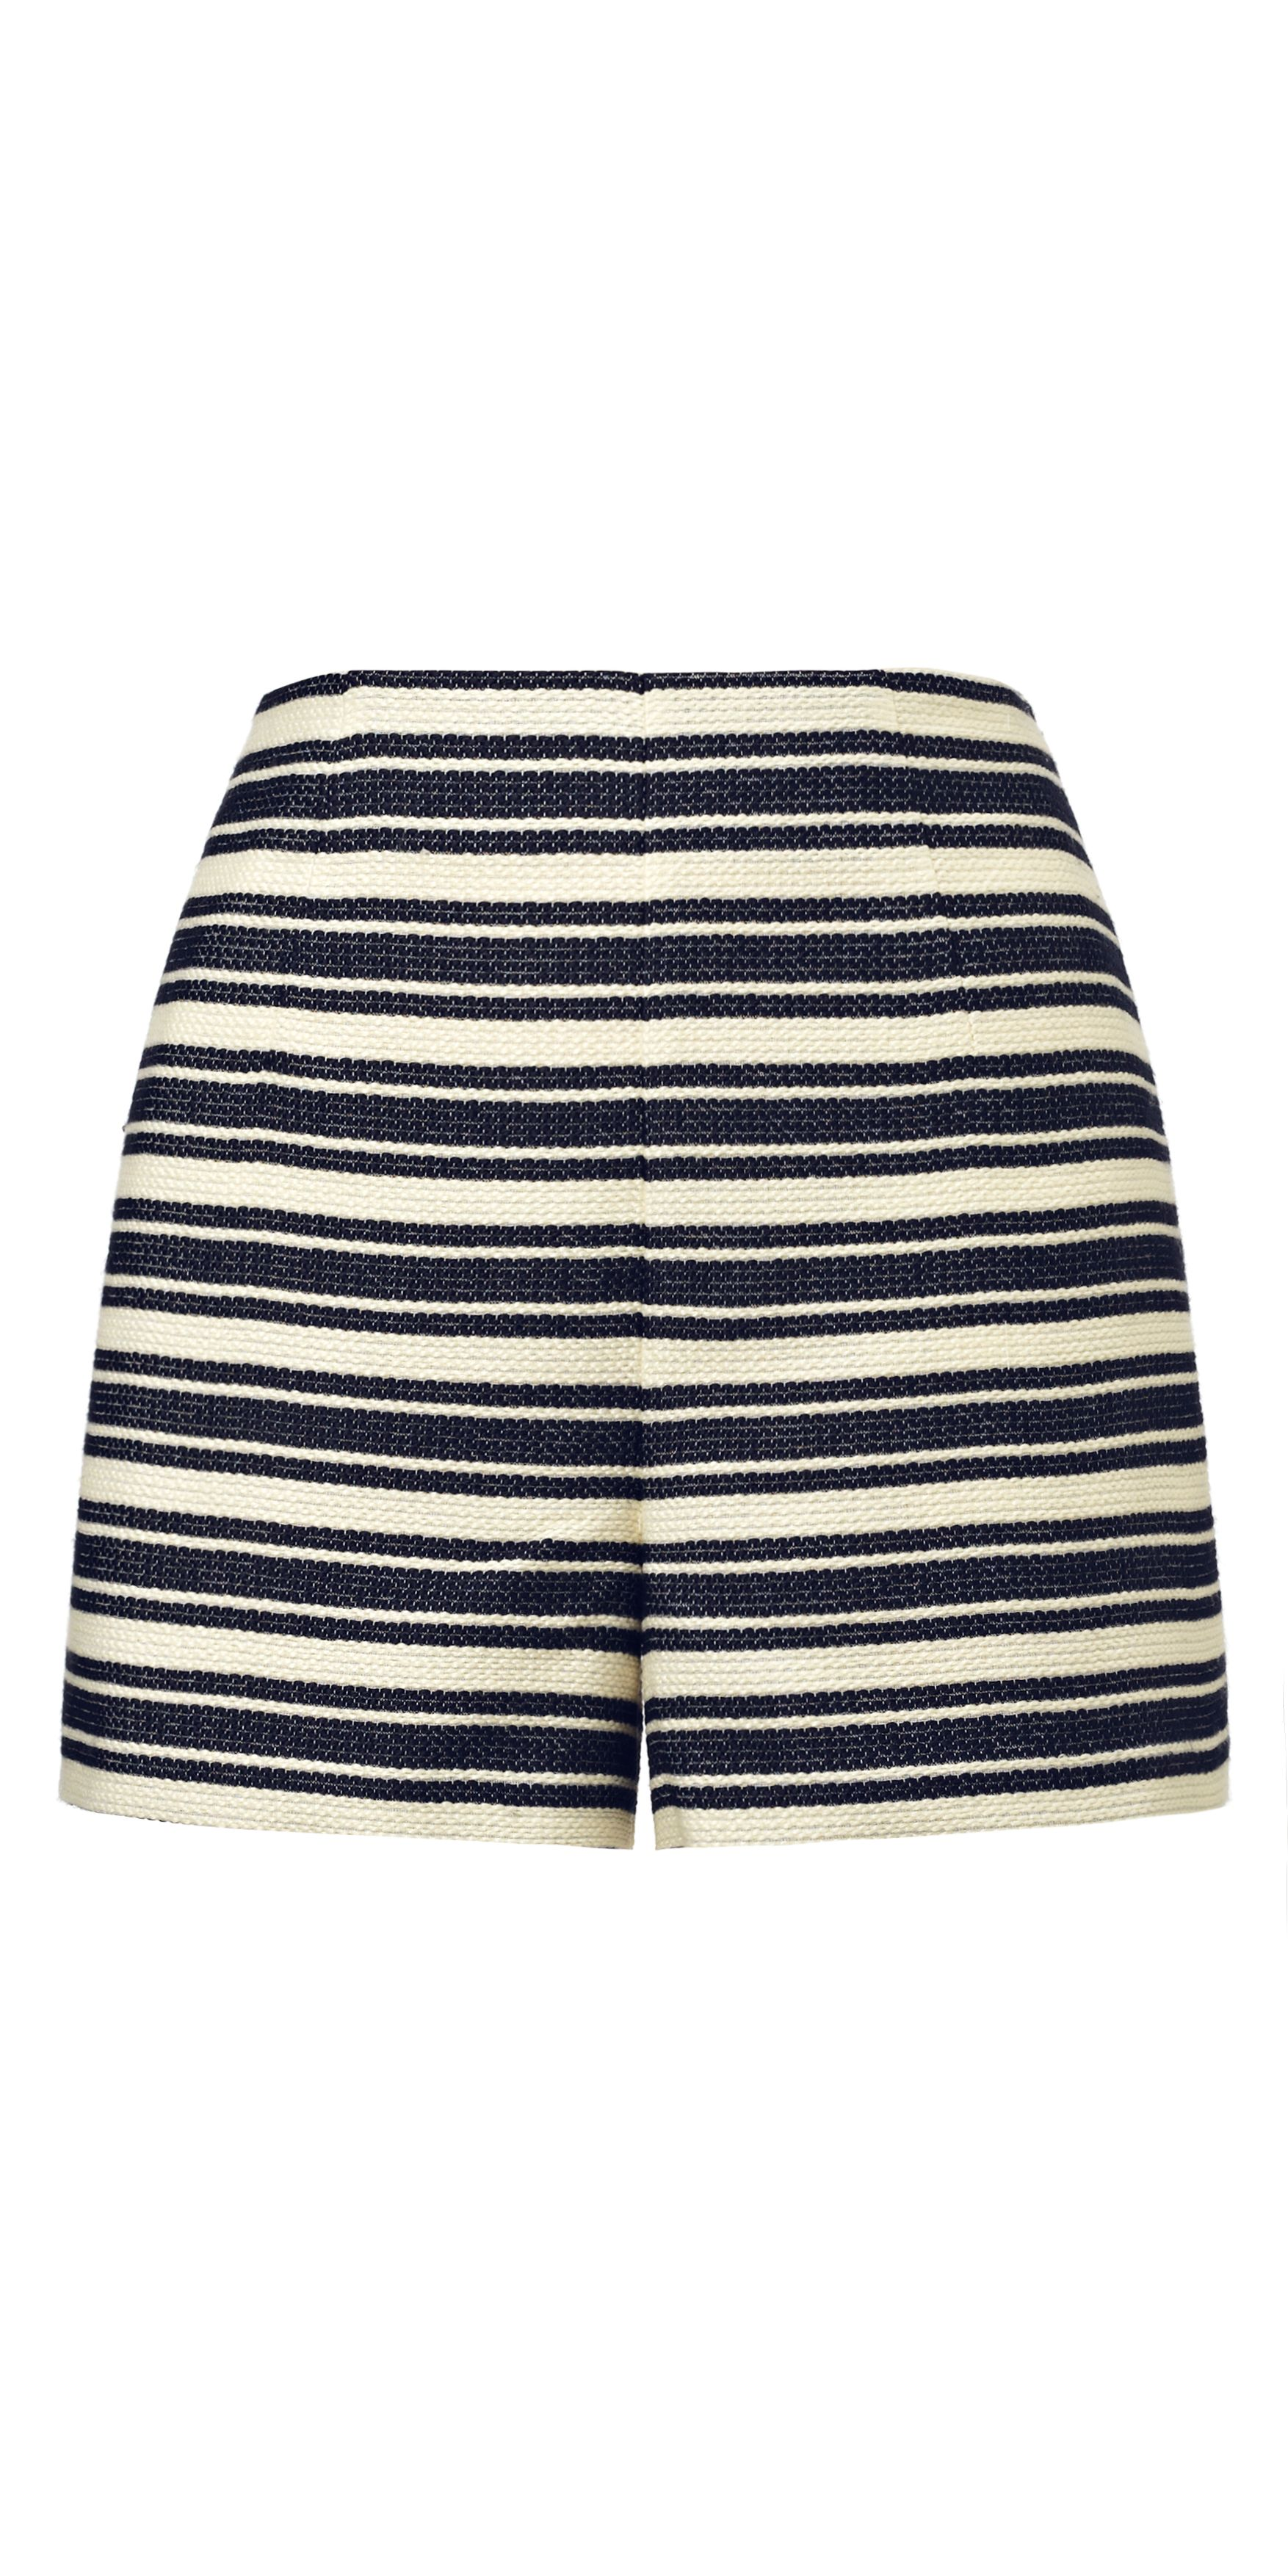 Audrey Stripe Short